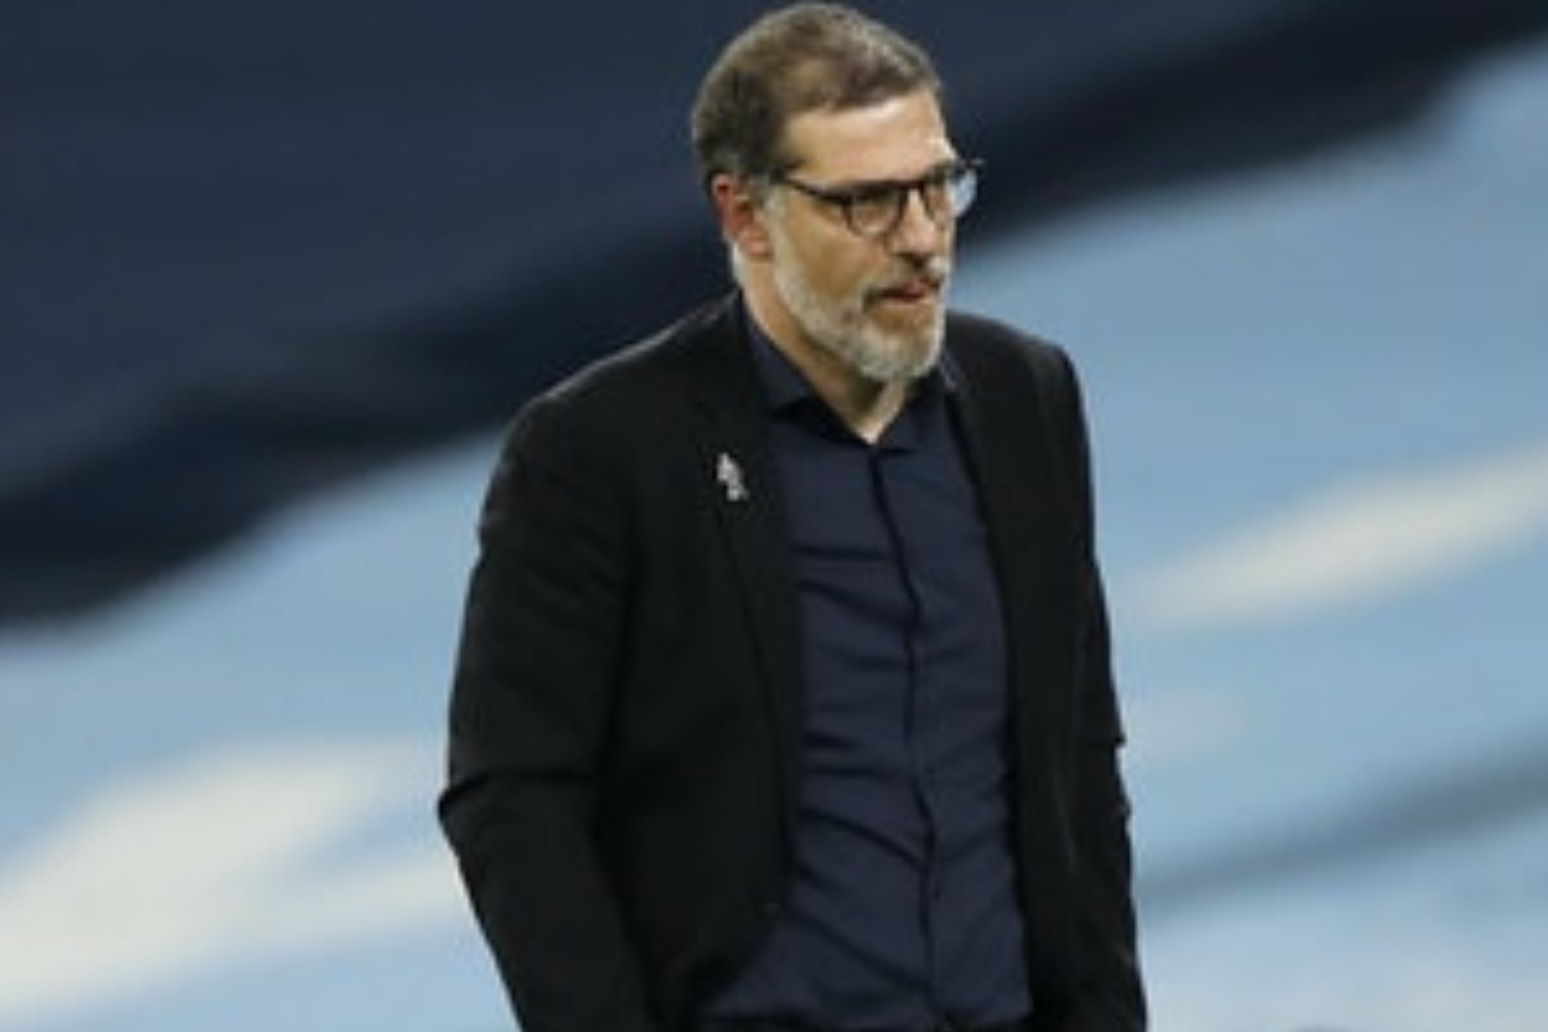 Slaven Bilic handed Beijing Guoan reins three weeks after West Brom dismissal thumbnail